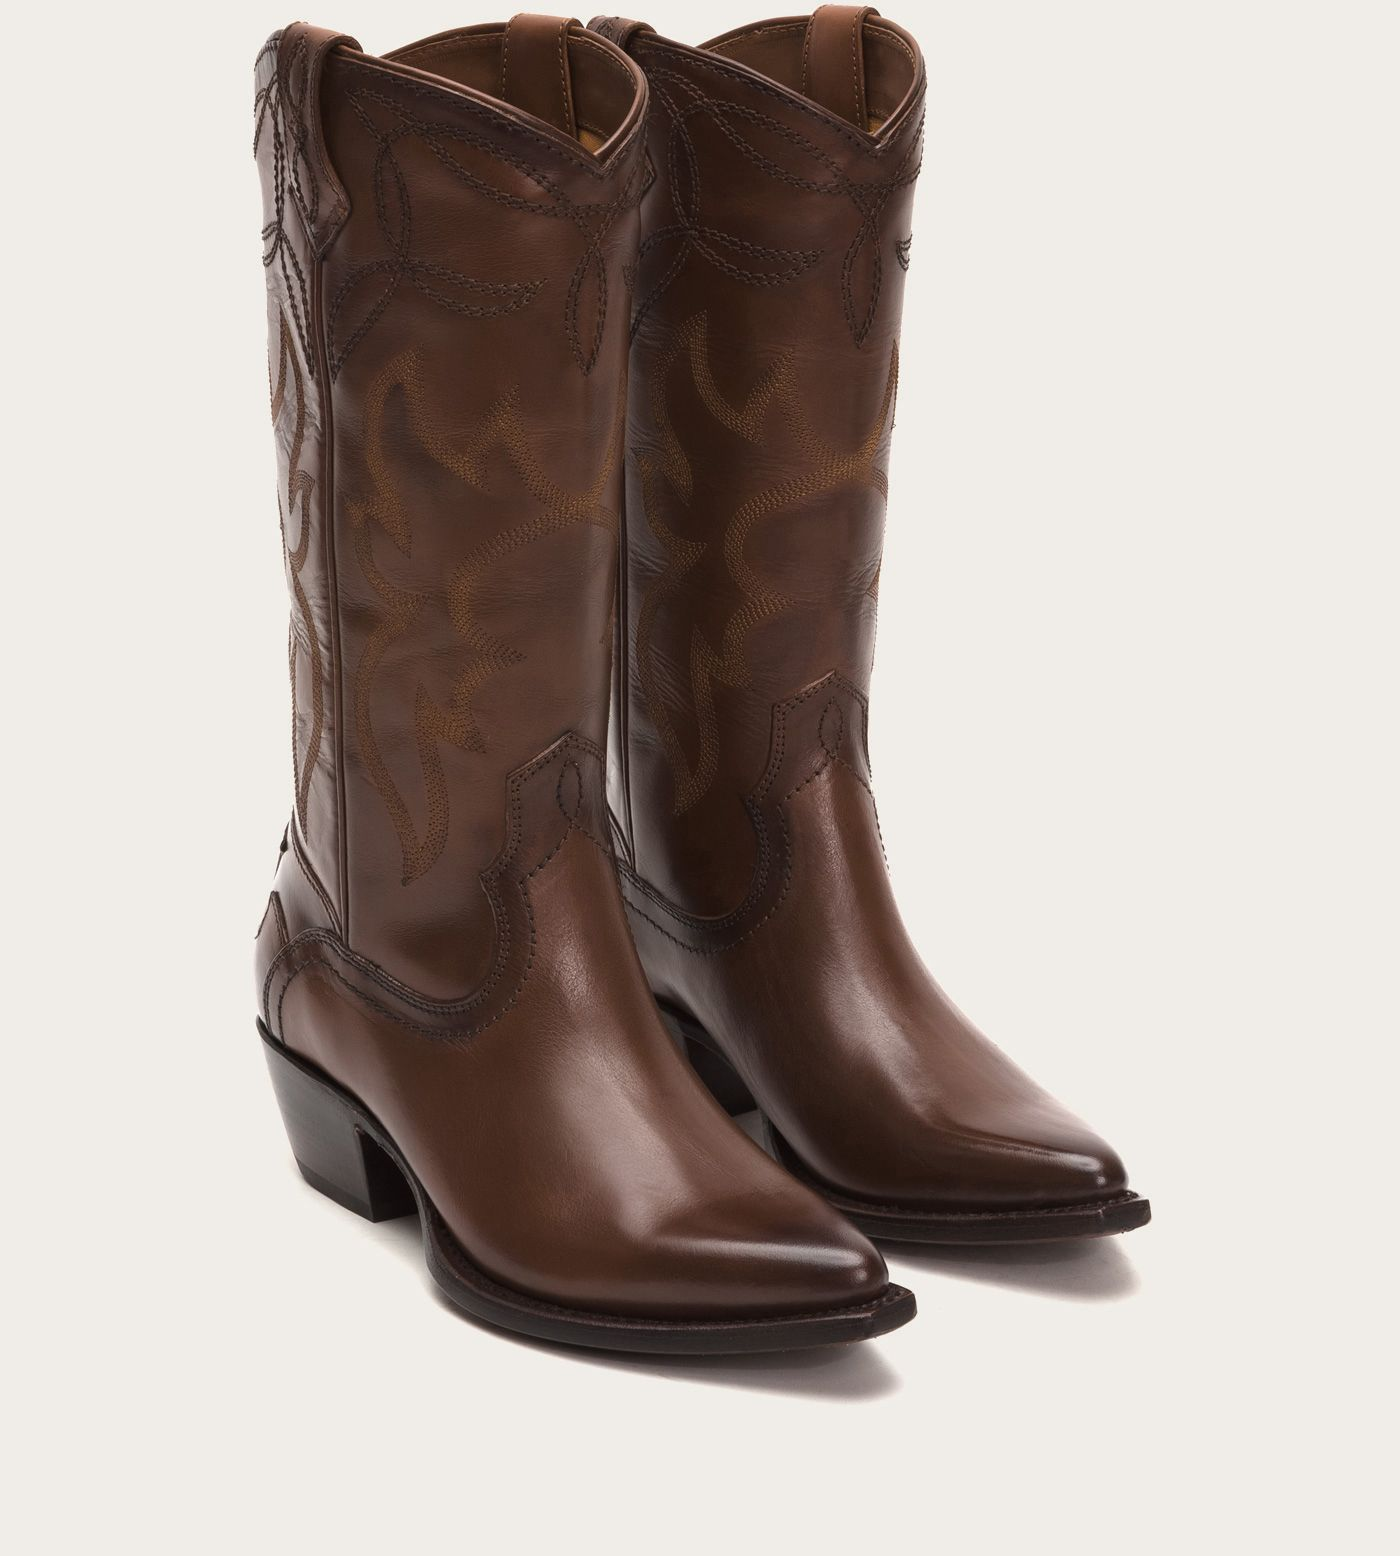 Whiskey Shane Embroidered Tall | FRYE Boots | Boots, Wide